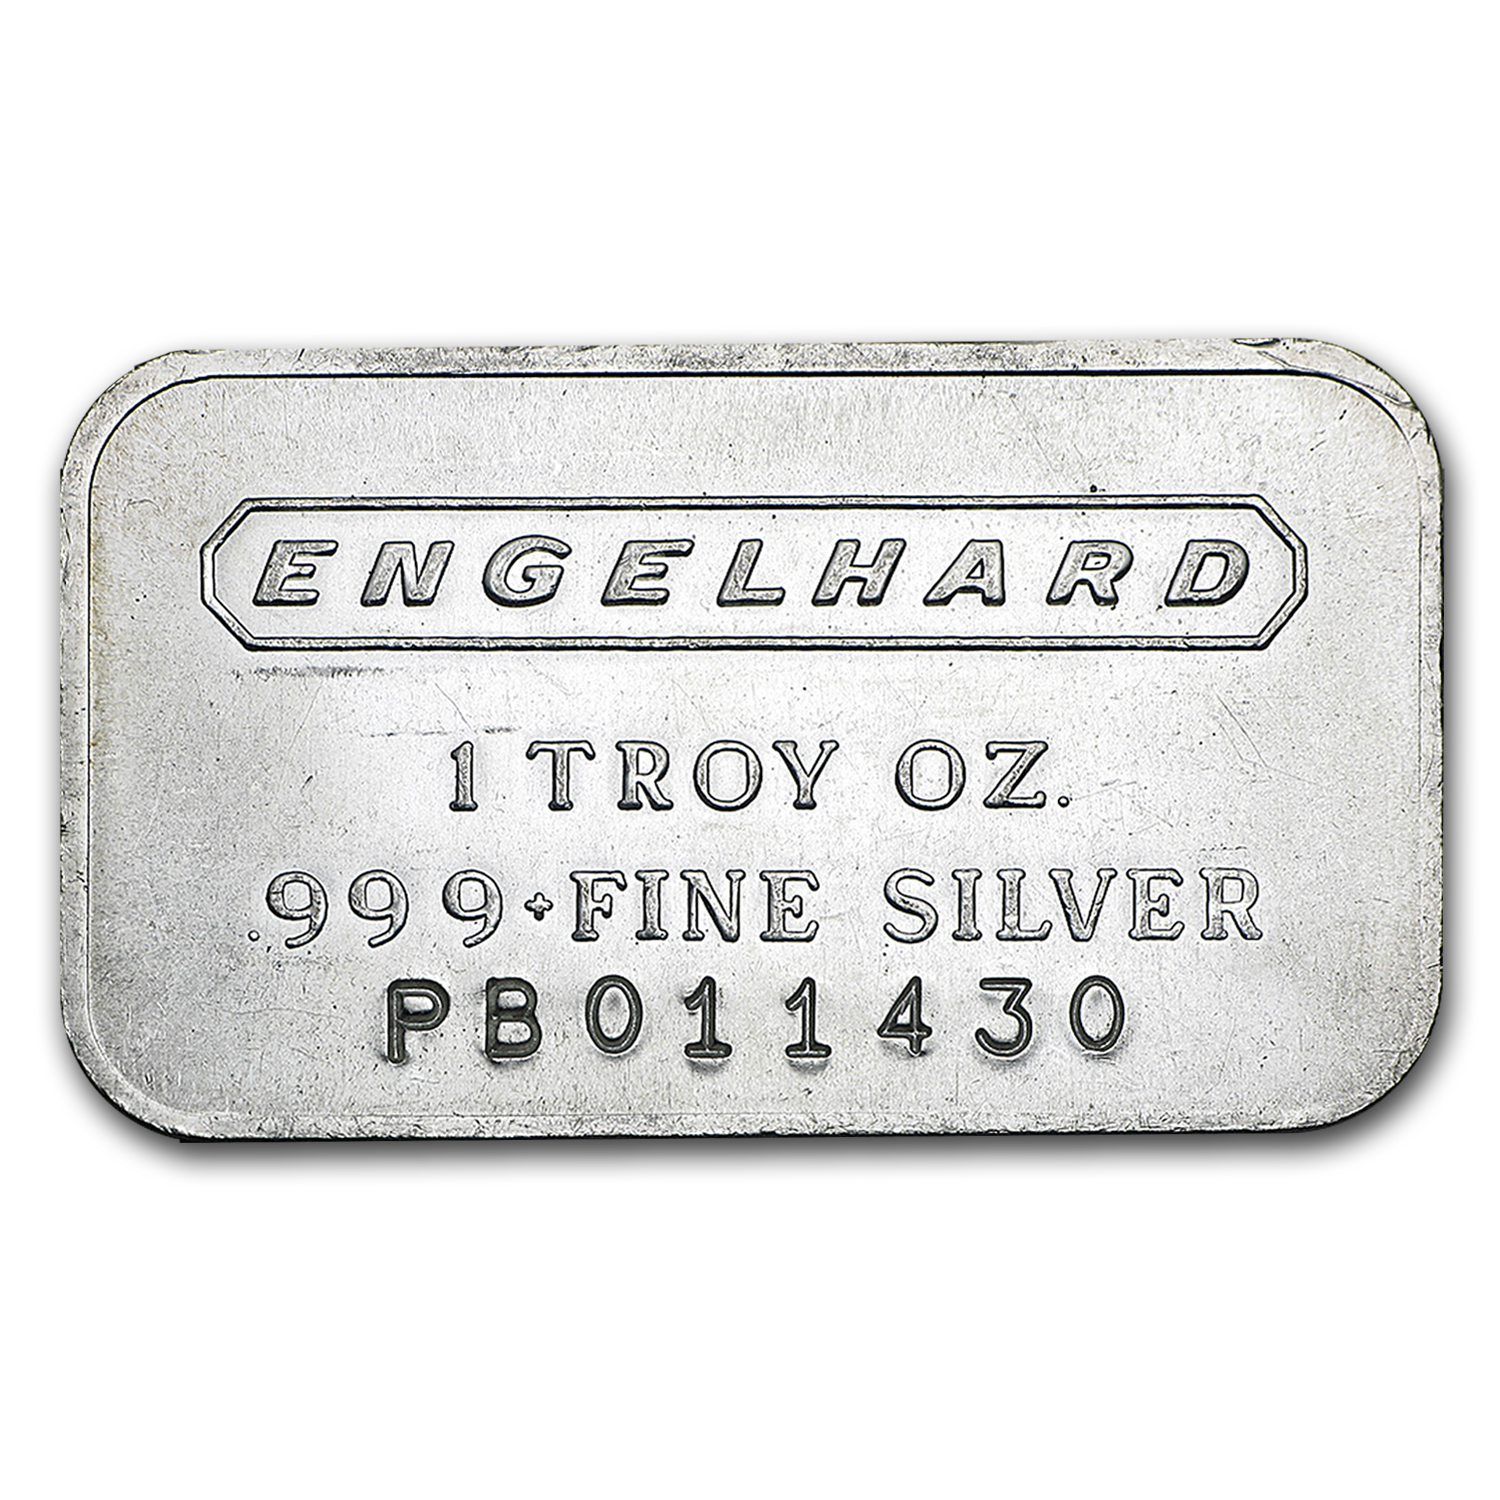 1 oz Silver Bar - Engelhard (Wide Logo, 6-digit, Frosted Back)